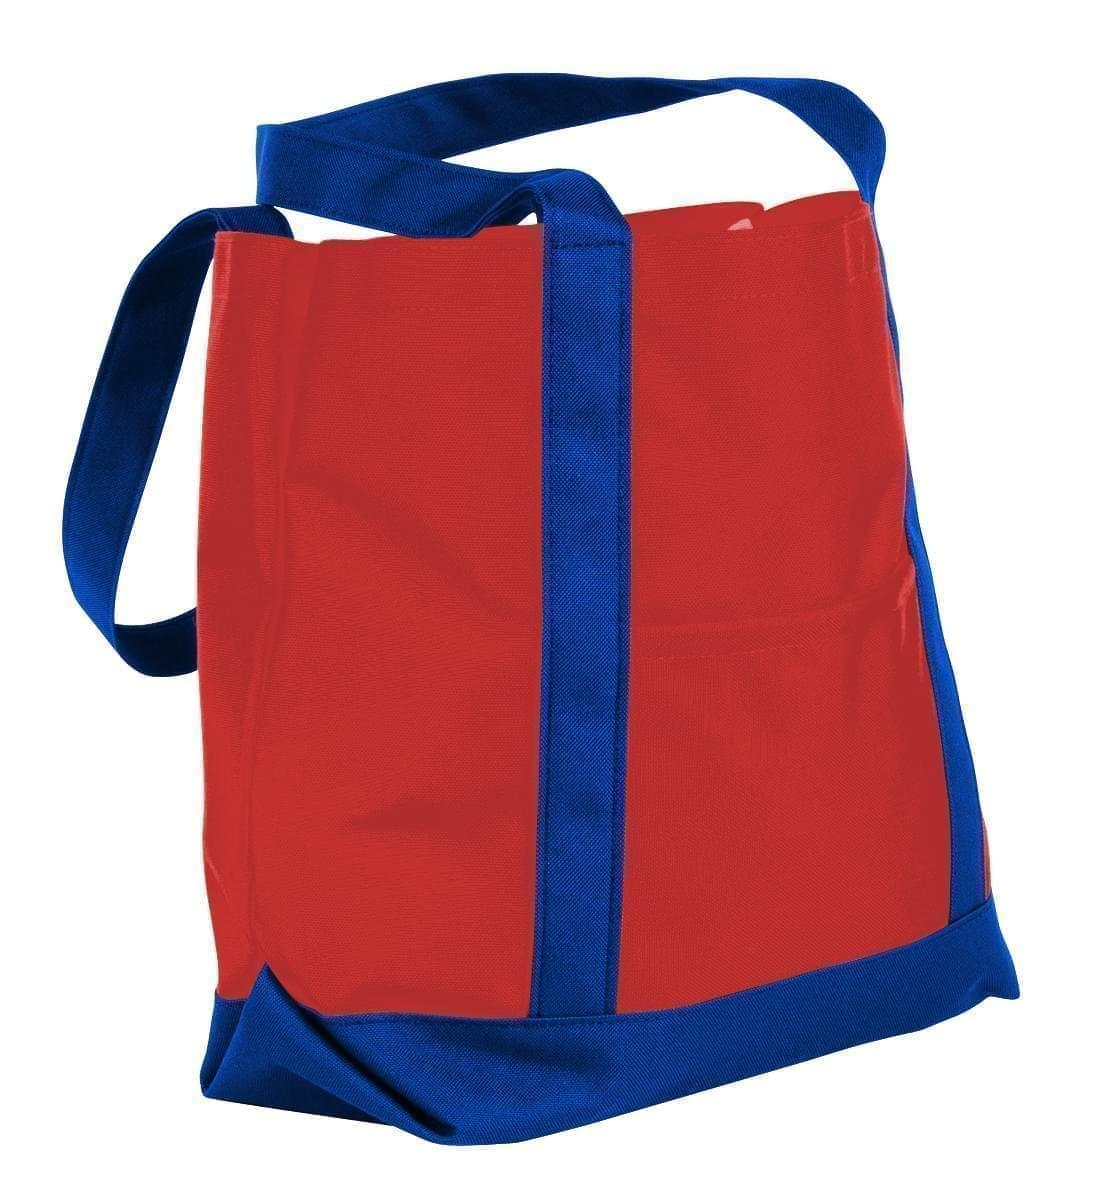 USA Made Nylon Poly Boat Tote Bags, Red-Royal Blue, XAACL1UAZM